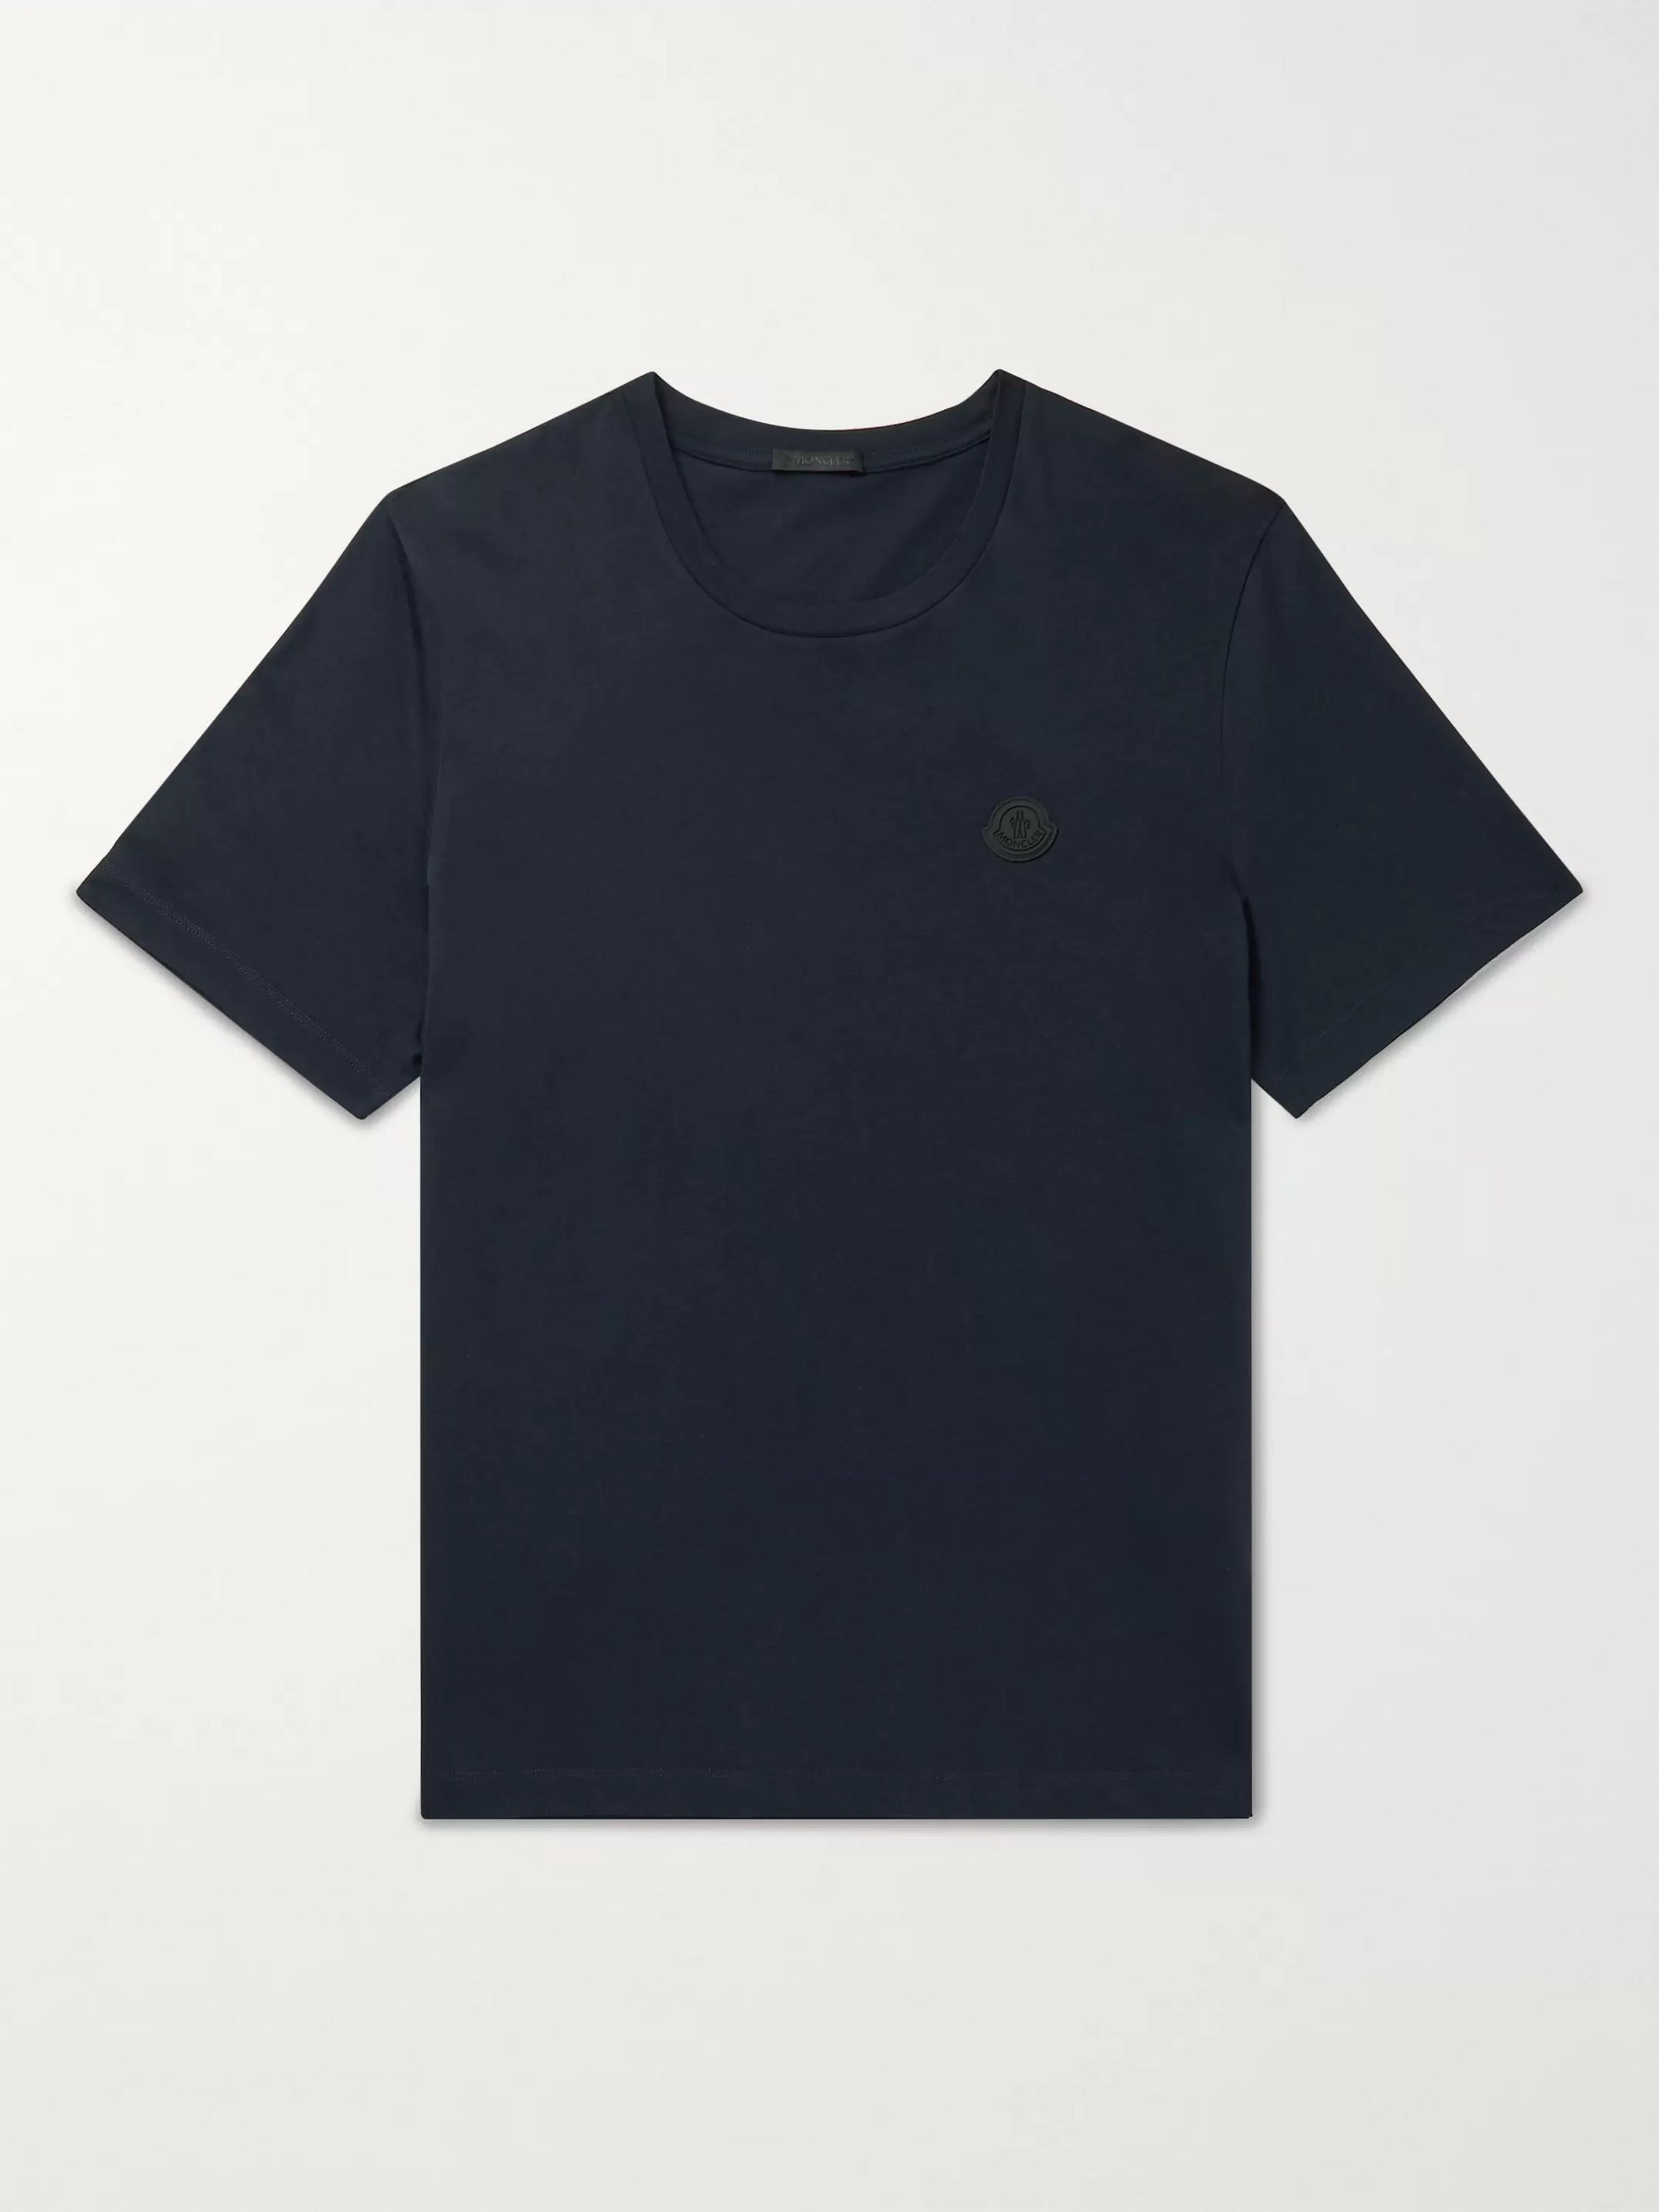 MONCLER Logo-Appliquéd Printed Cotton-Jersey T-Shirt